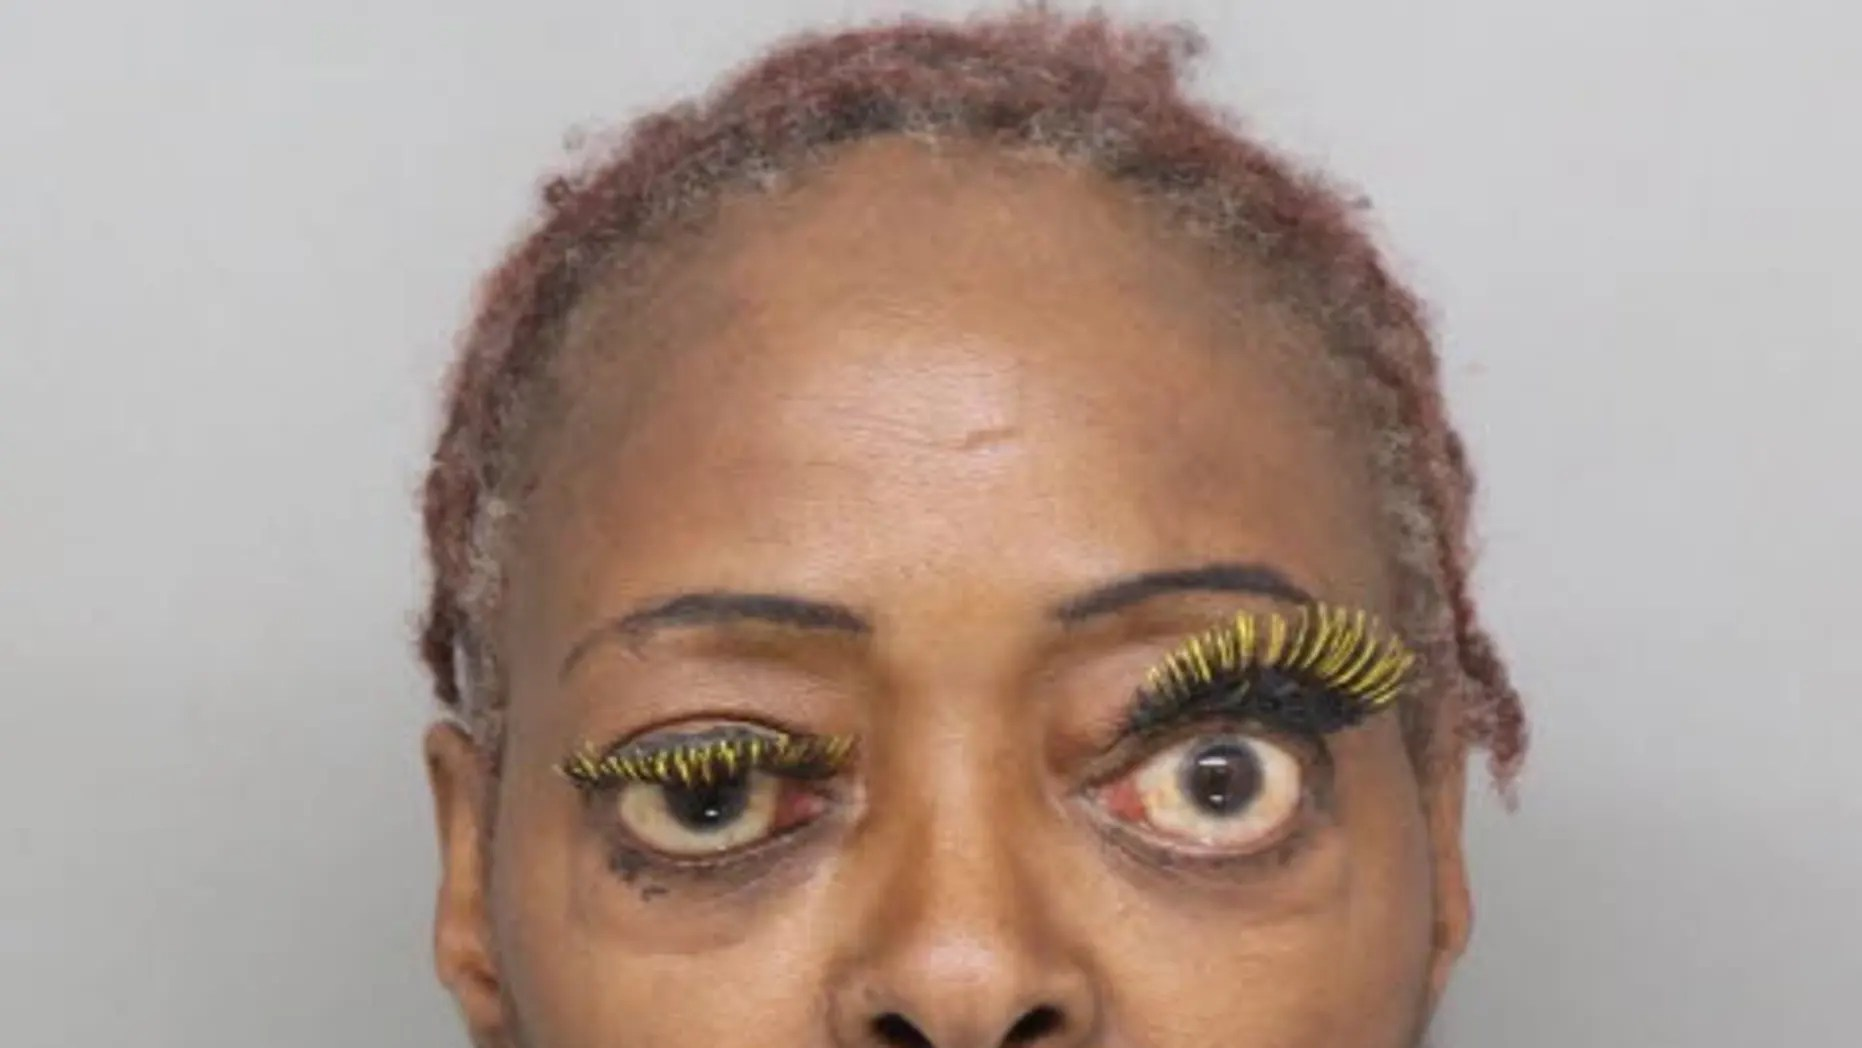 Charlene Thompson, 61, allegedly poured hot grease on another woman during an argument, according to multiple reports.